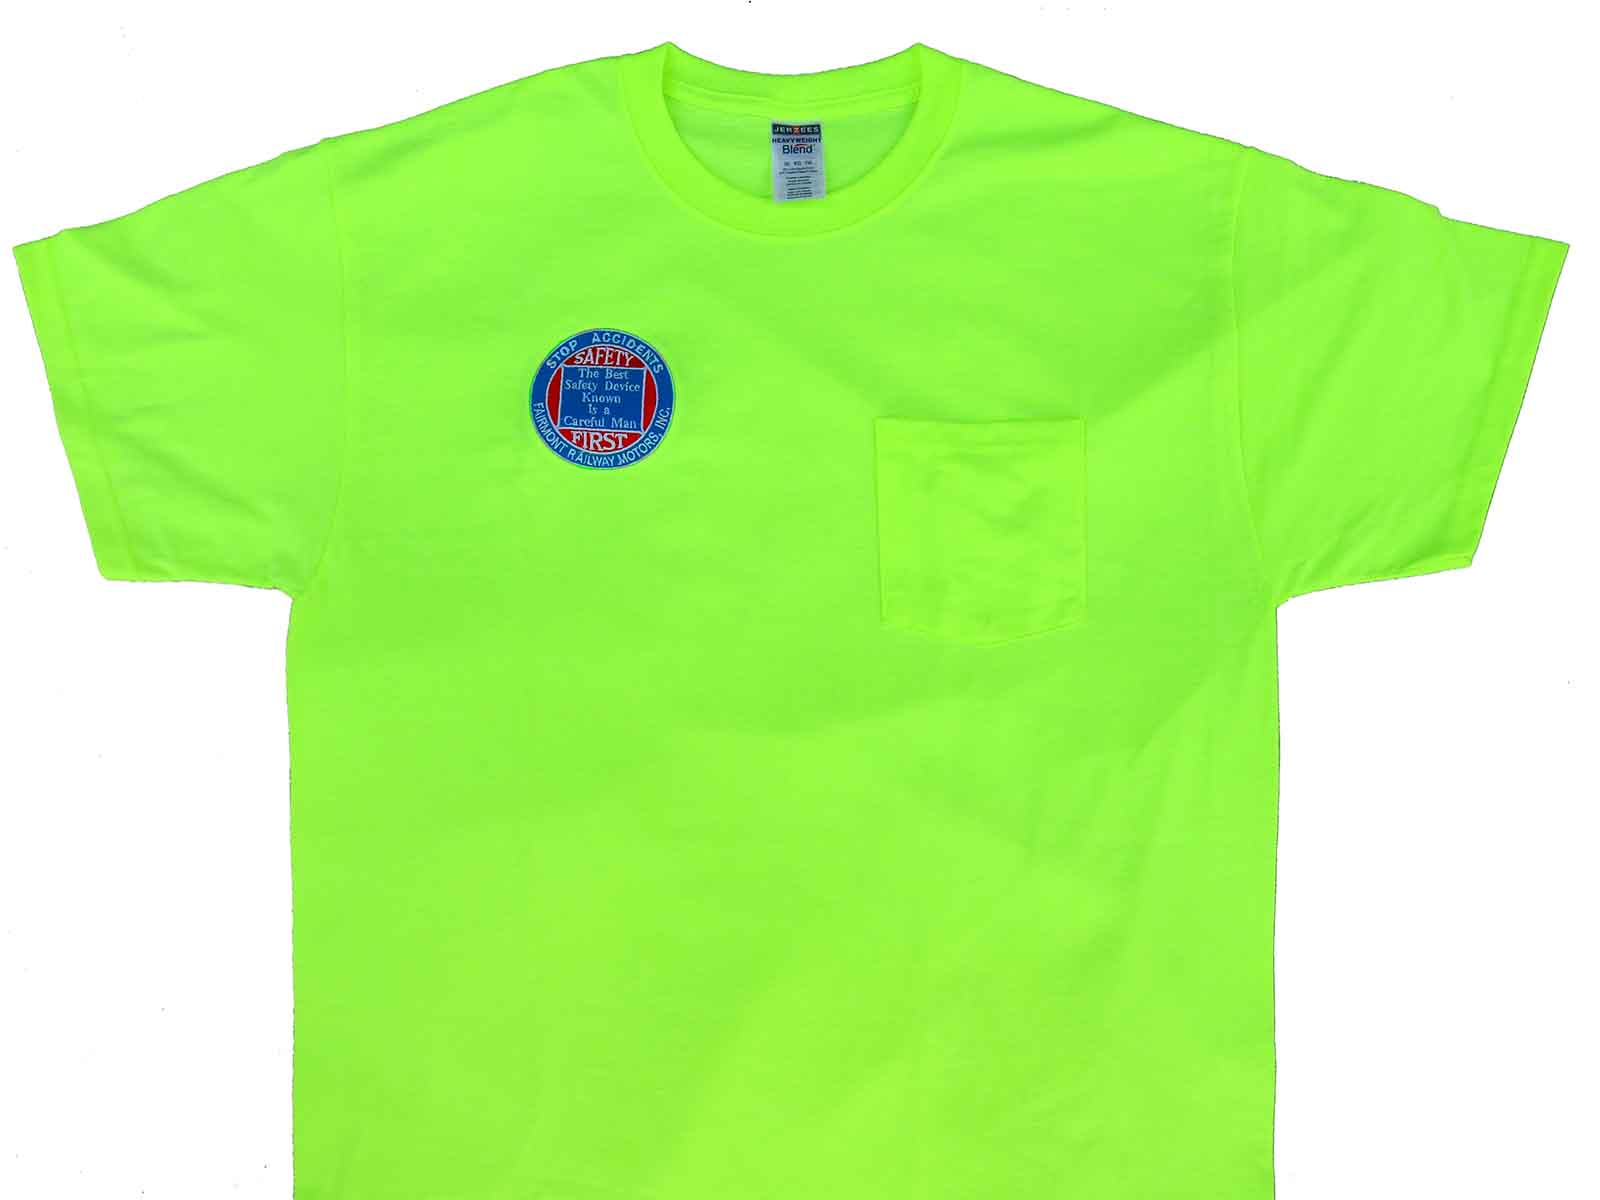 Shirts and embroidery safety. Shirt clipart neon shirt svg freeuse library